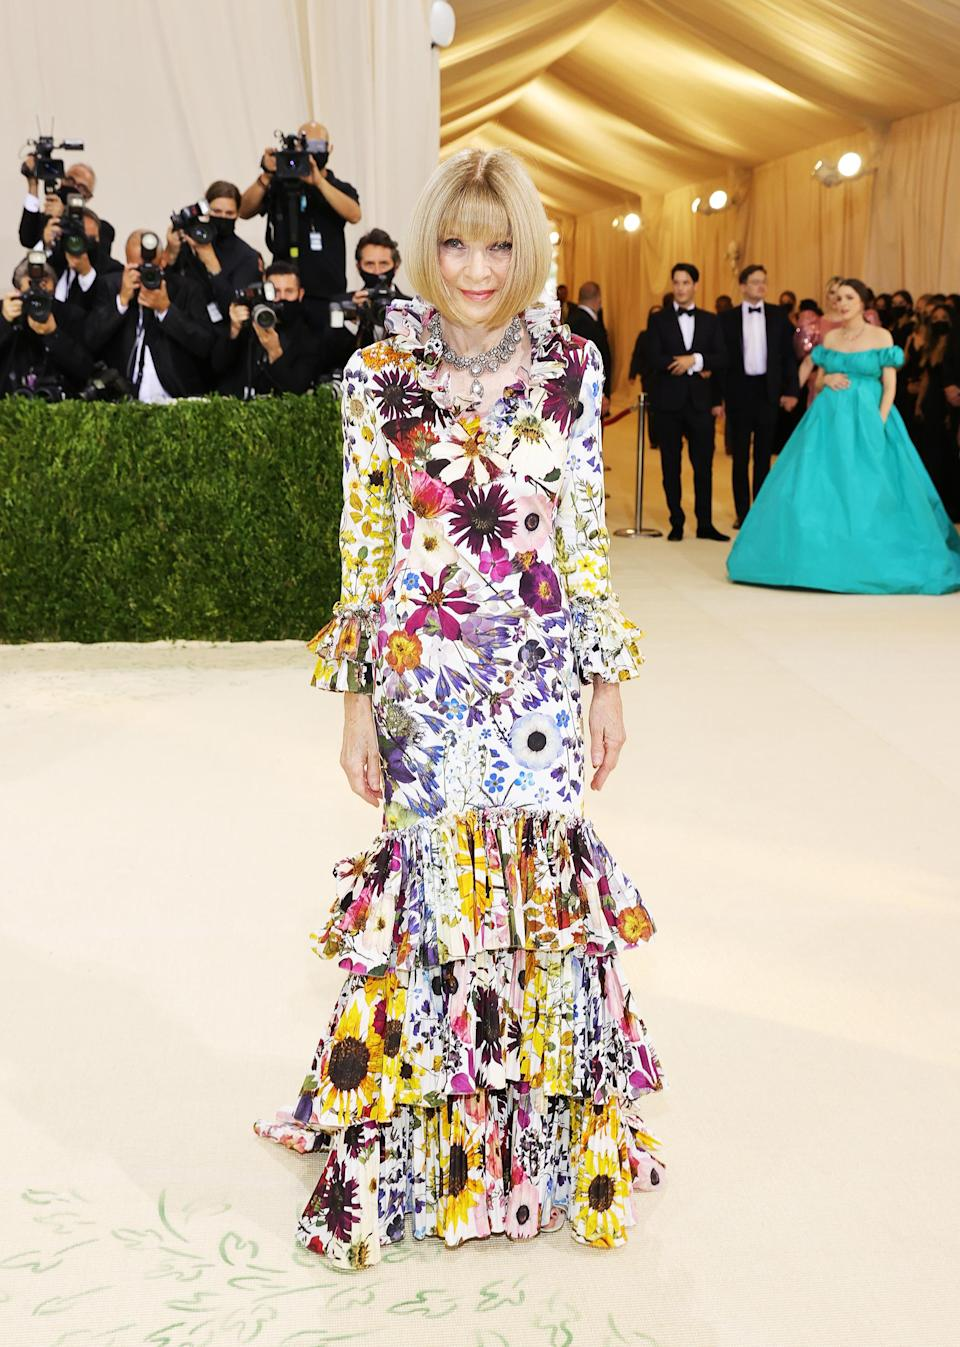 The 2021 Met Gala Celebrating In America: A Lexicon Of Fashion - Arrivals (Mike Coppola / Getty Images)